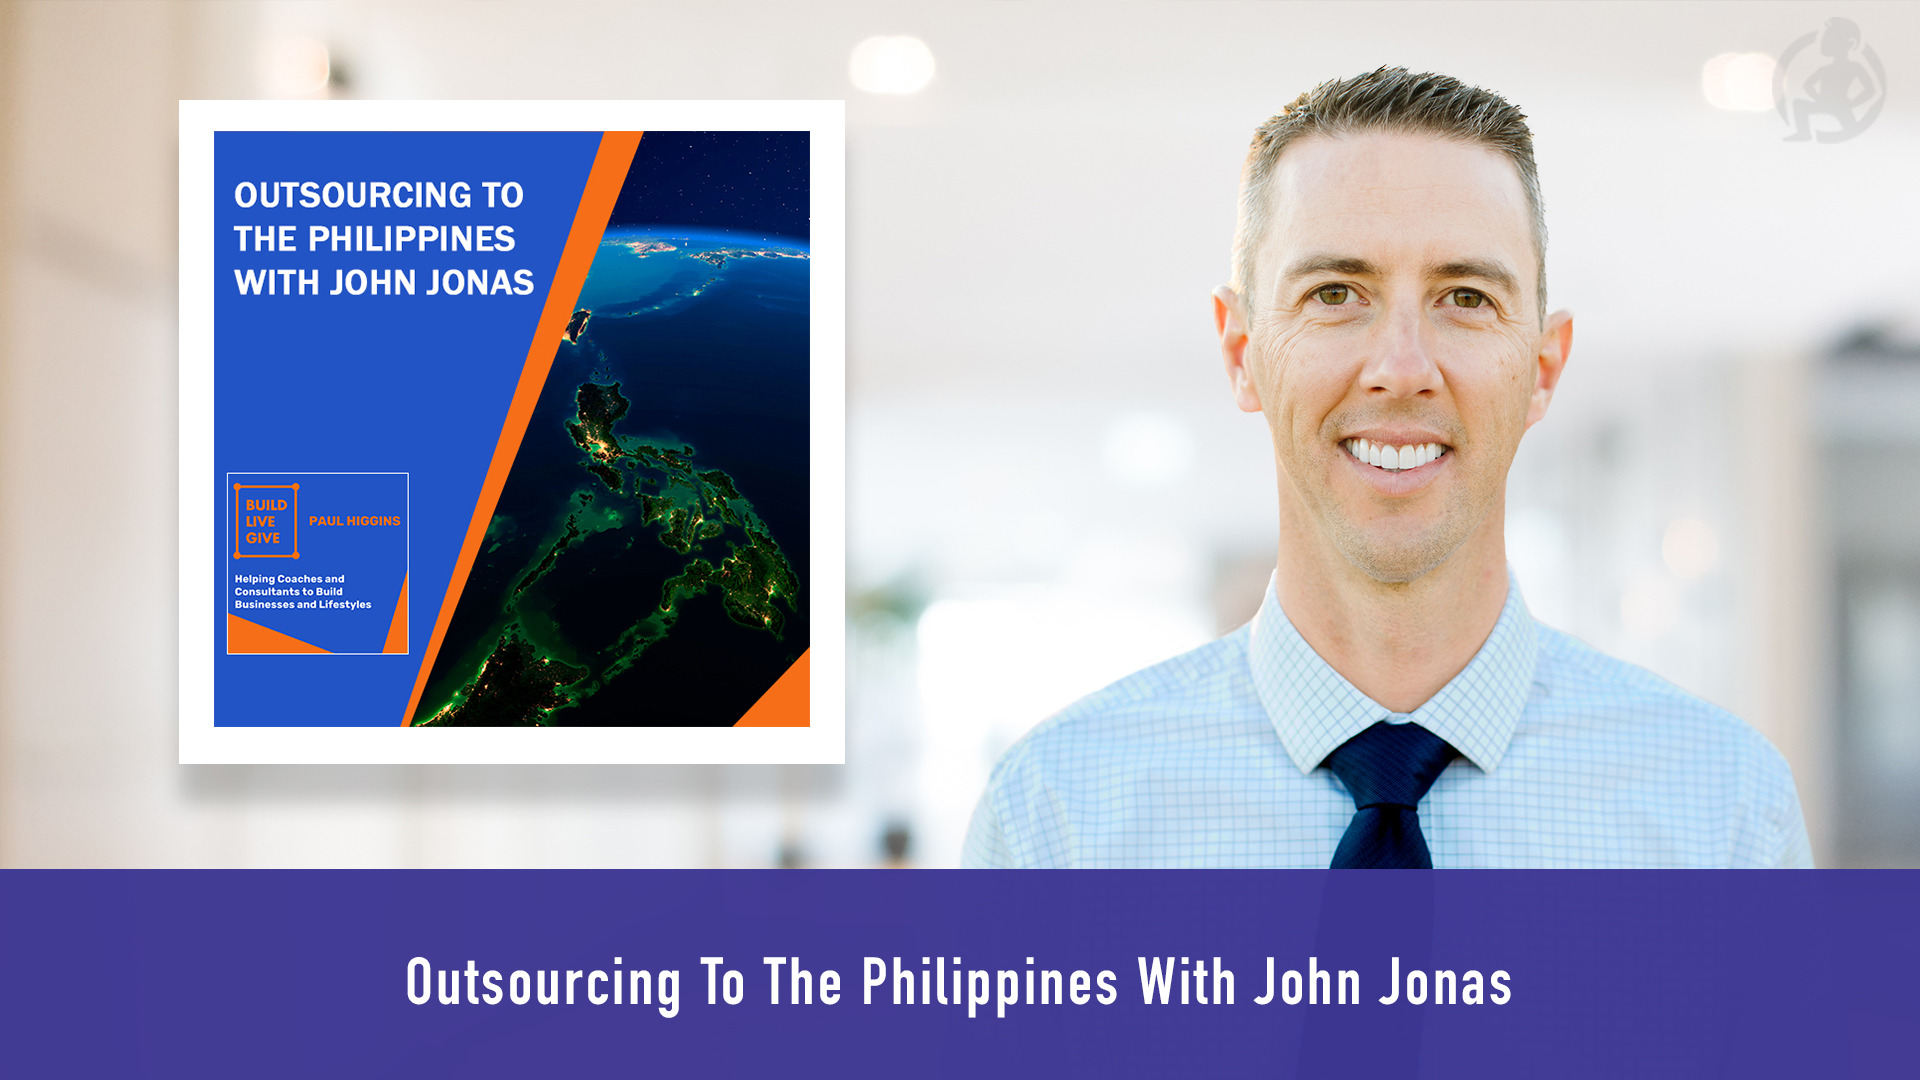 Outsourcing To The Philippines With John Jonas